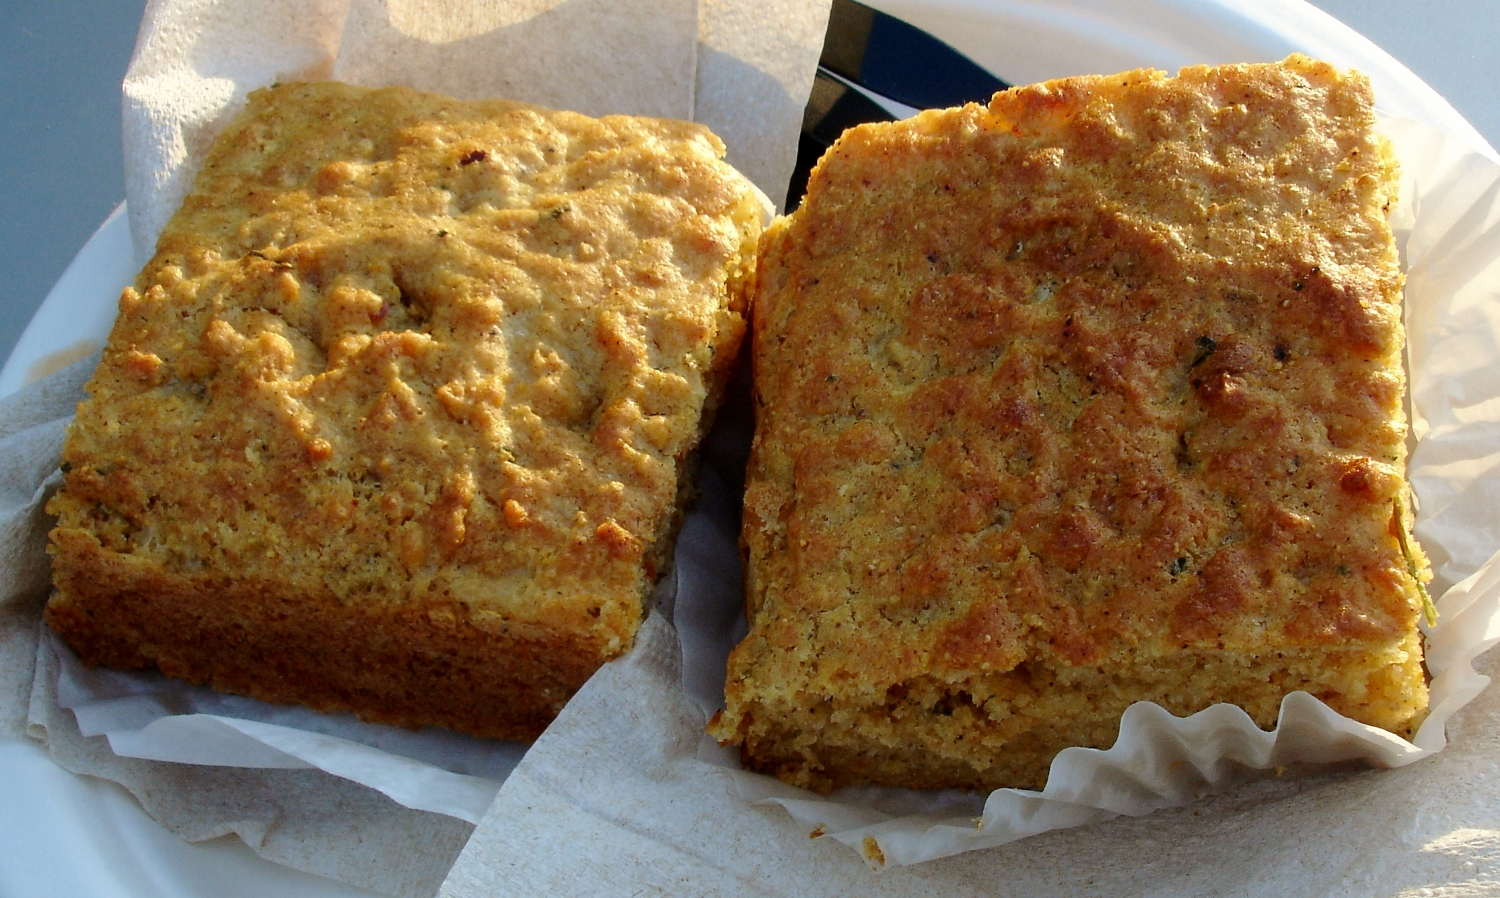 Huge squares of crusty, coarse-textured chili cheddar cornbread were set up next to the soup kettle (at just a buck-and-a-quarter a square). Perfect with a bowl of soup or the mac and cheese.